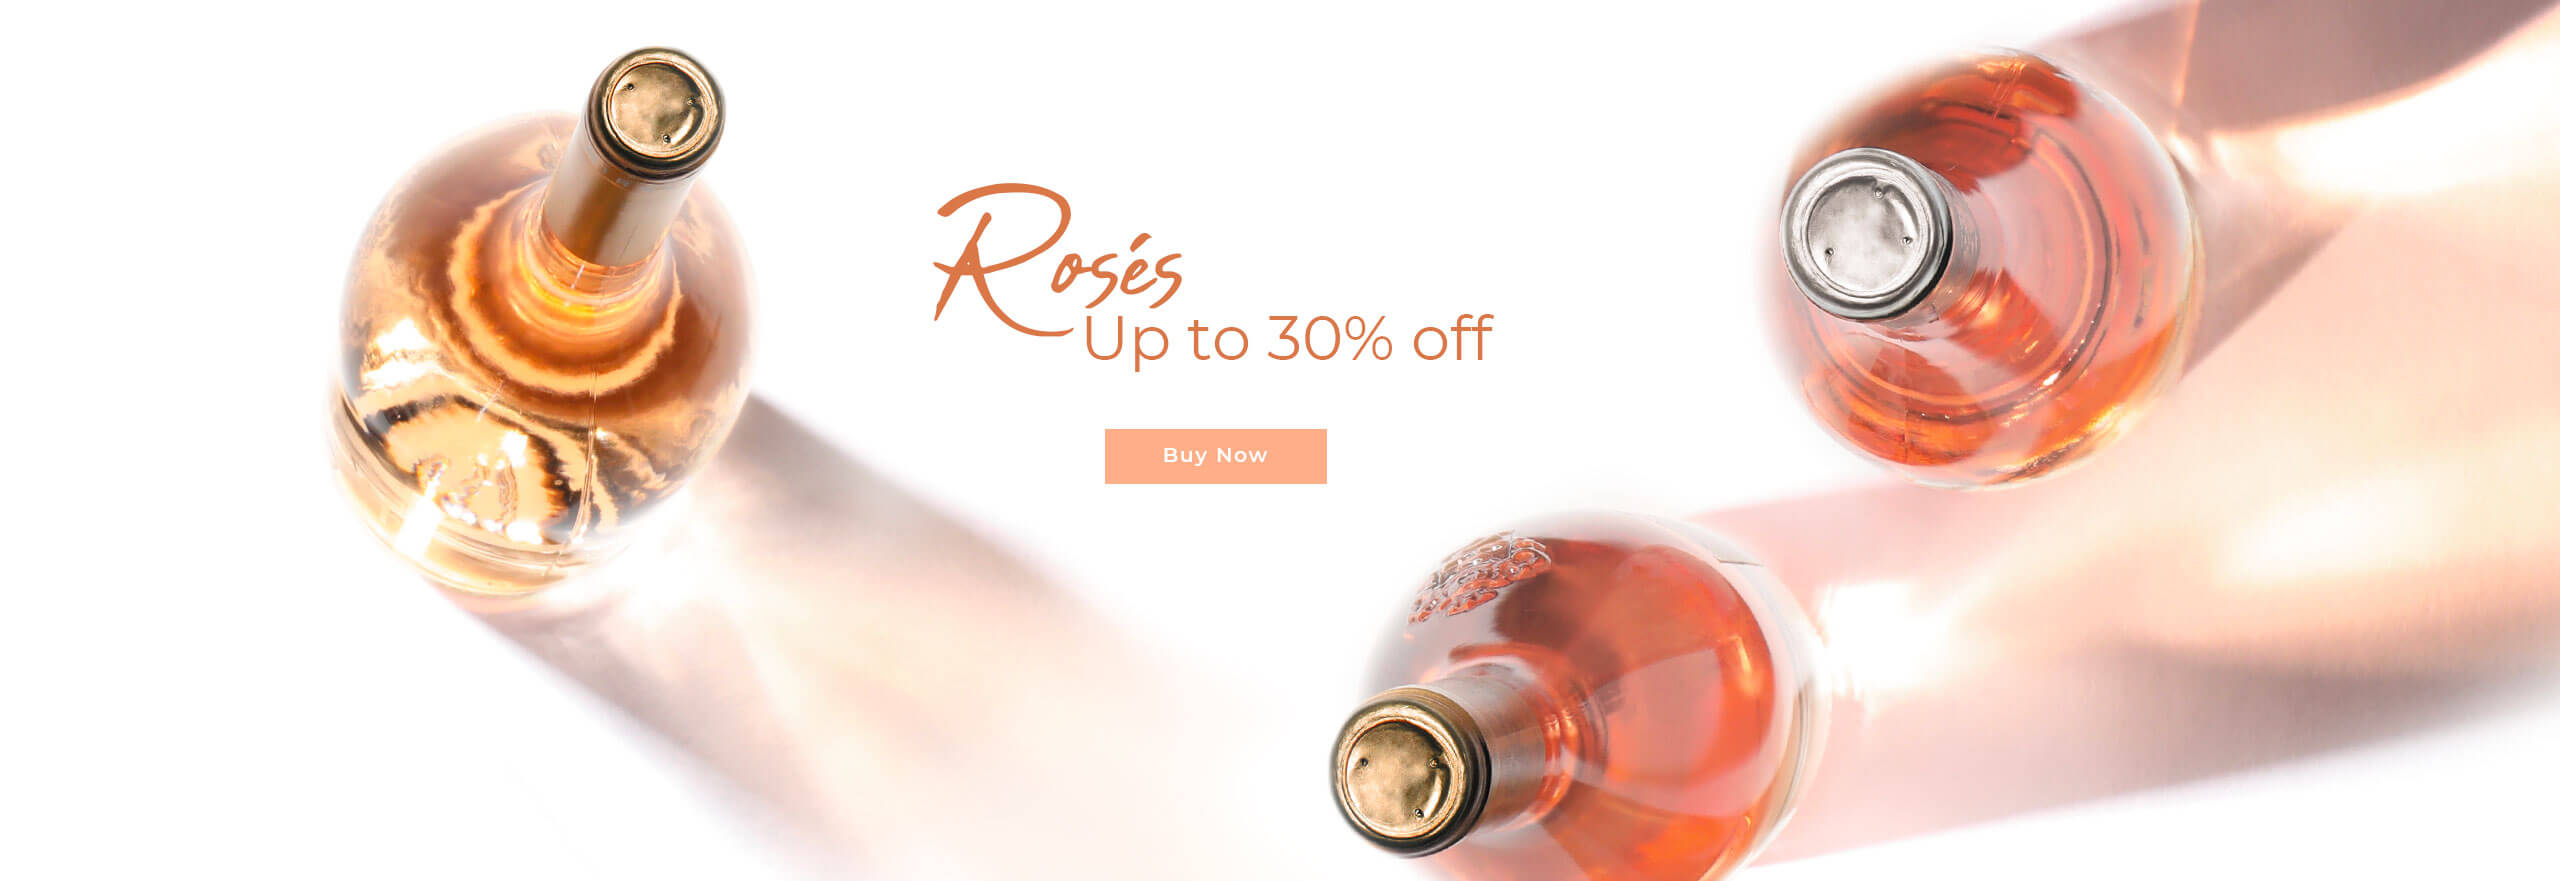 Rosé Discounts up to 30%